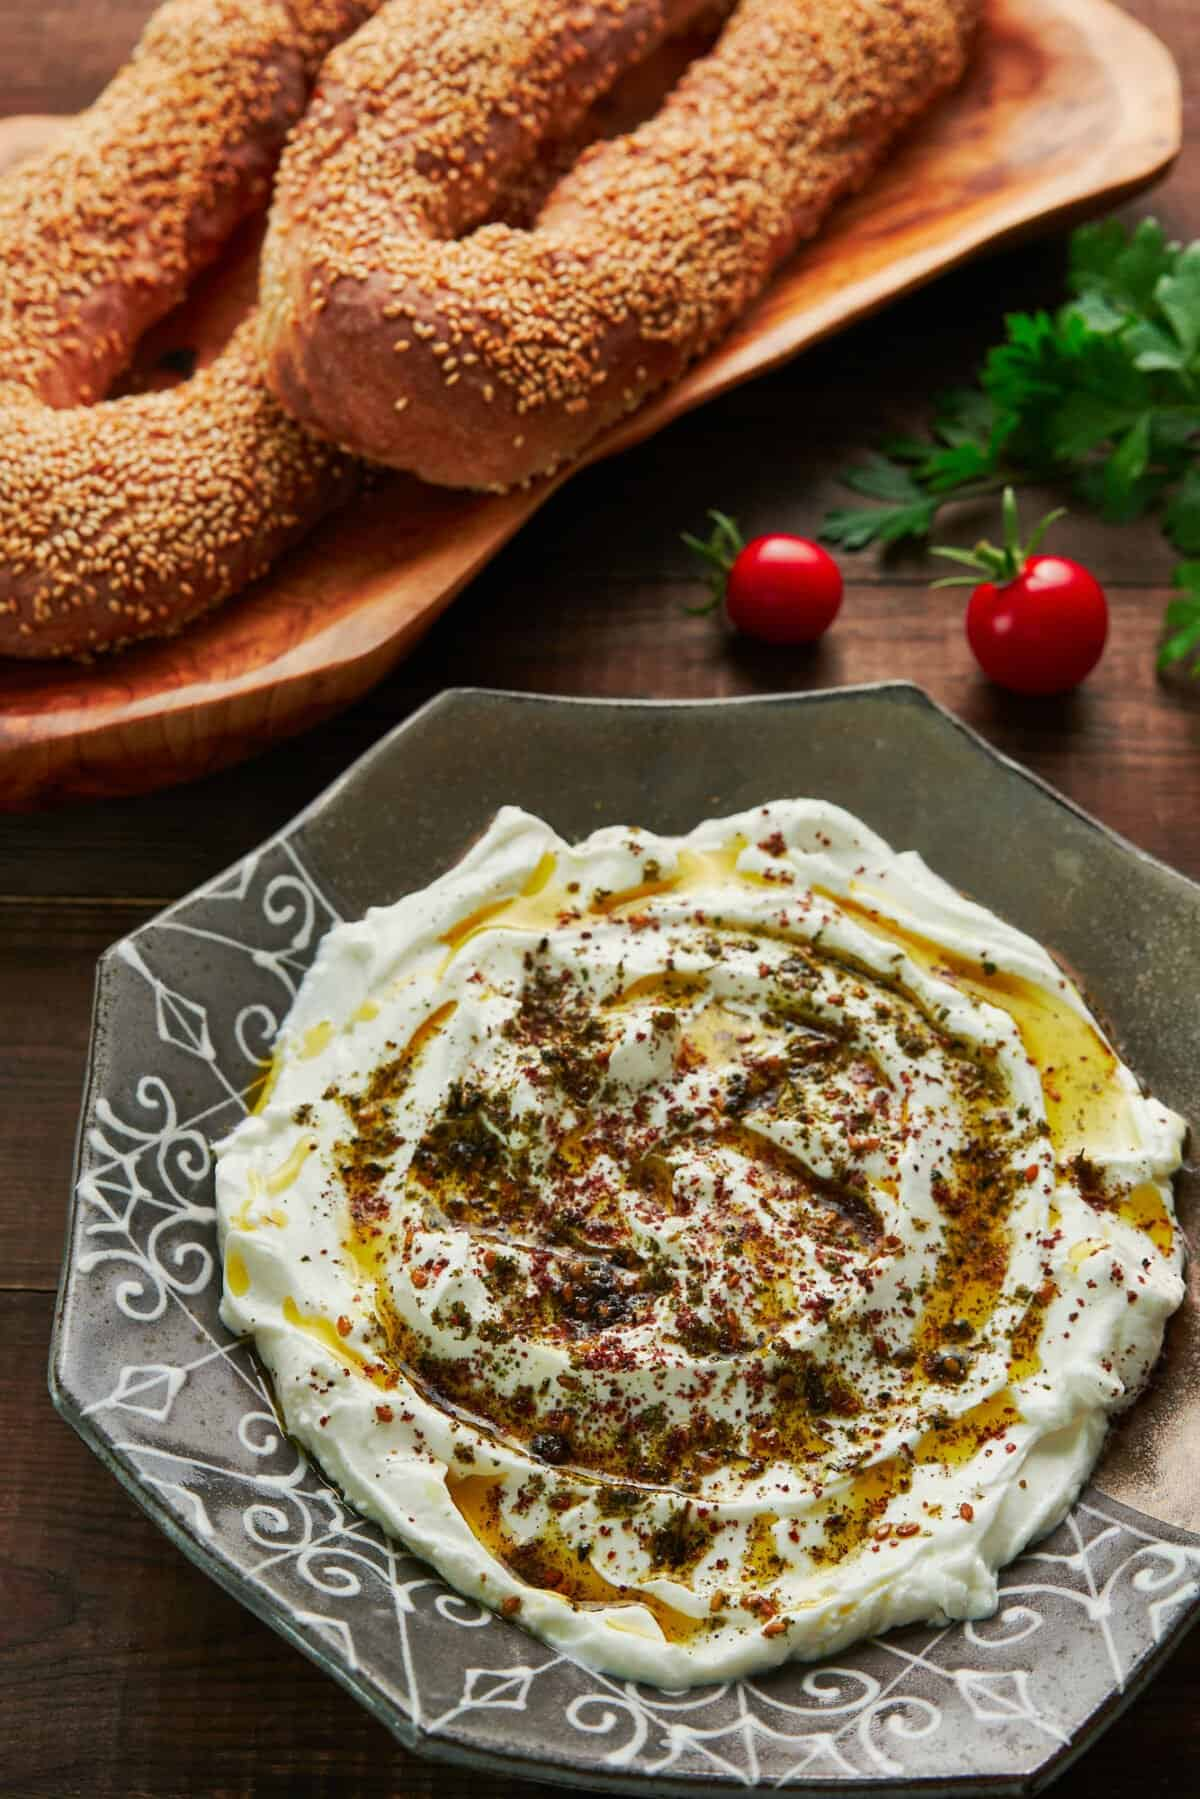 Labneh is a fresh cheese made by salting and straining yogurt, and it makes for a delicious condiment that's also great as a dip, mixed into sauces, and spread under salads. Show here with Jerusalem bagels.